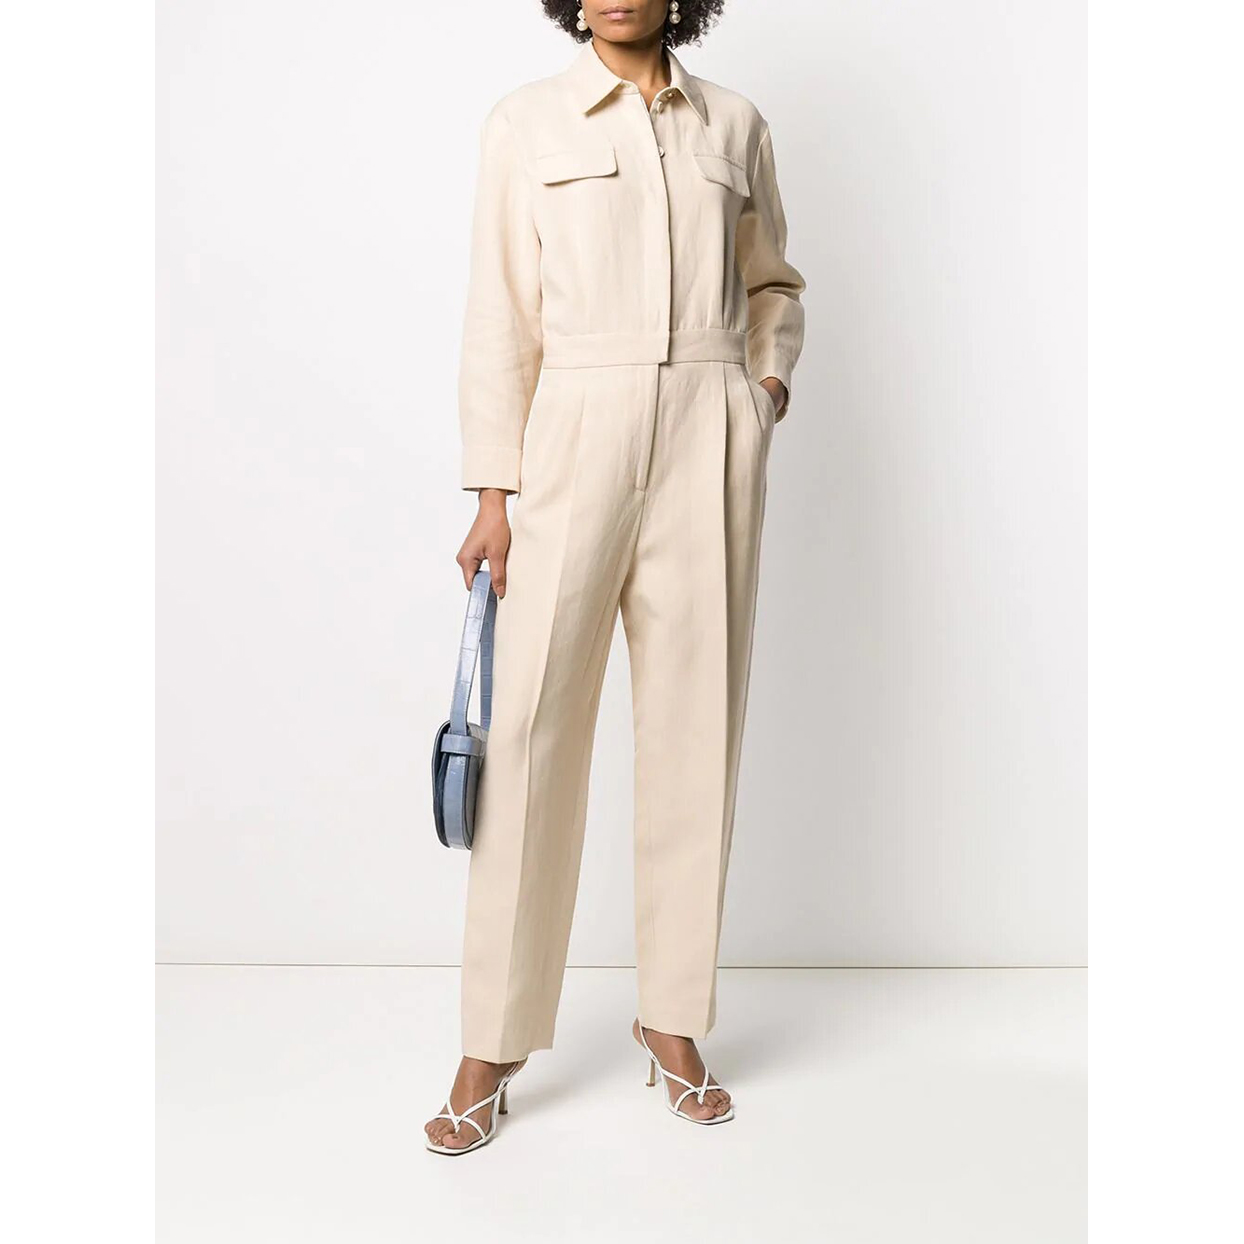 Sandro Paris aviator style jumpsuit